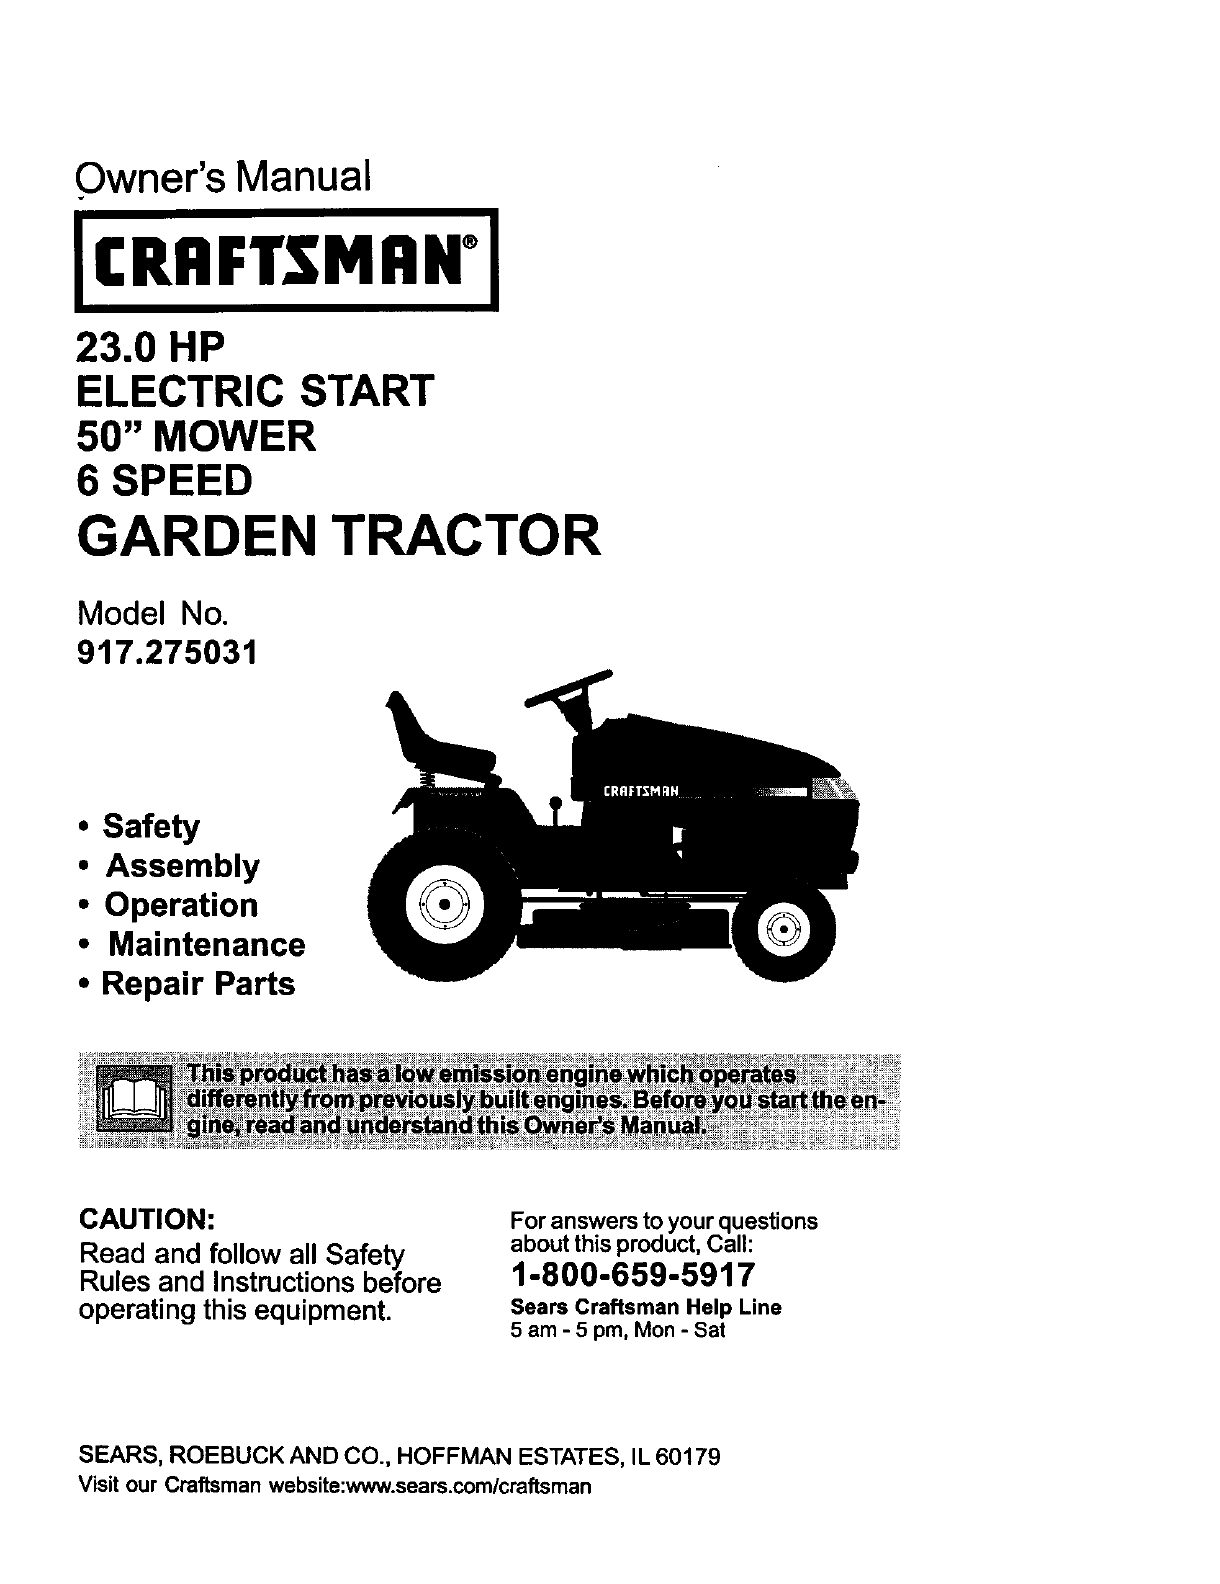 Craftsman Garden Tractor Parts Sears Manual Lawn Mower Parts intended for Craftsman Riding Lawn Mower Parts Diagram